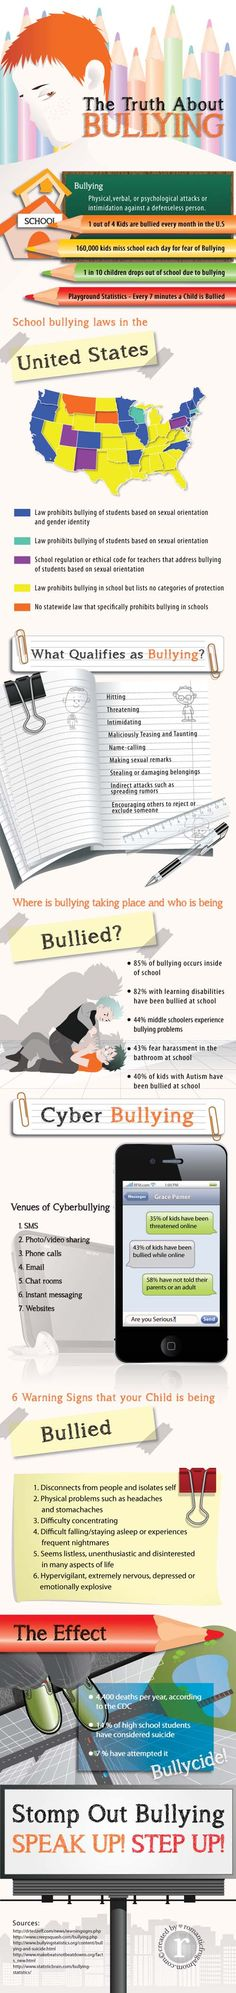 43% of kids online have been bullied